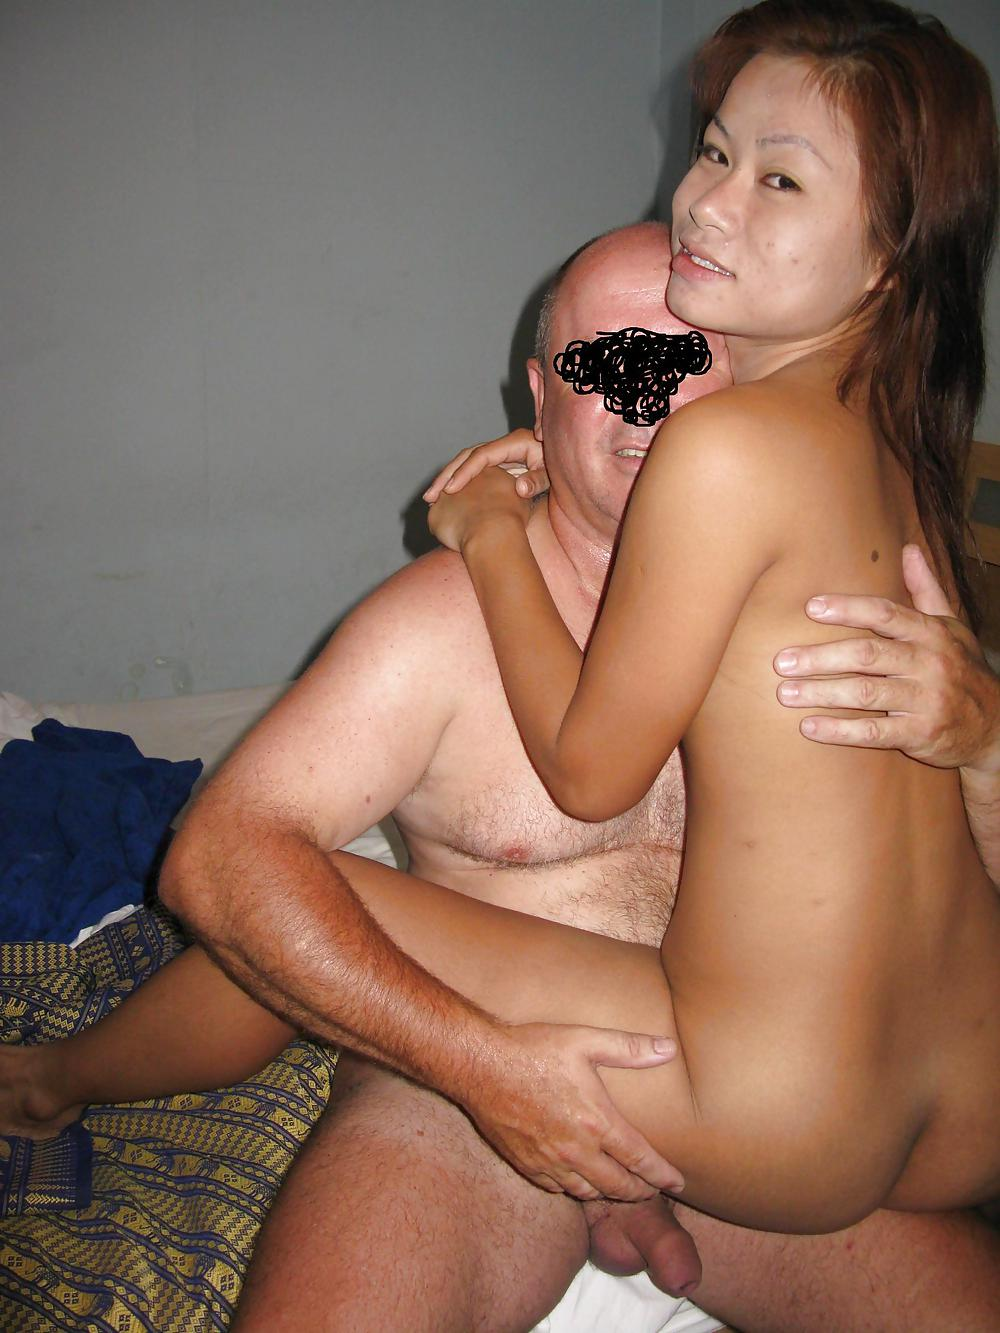 Girl thai nude bar